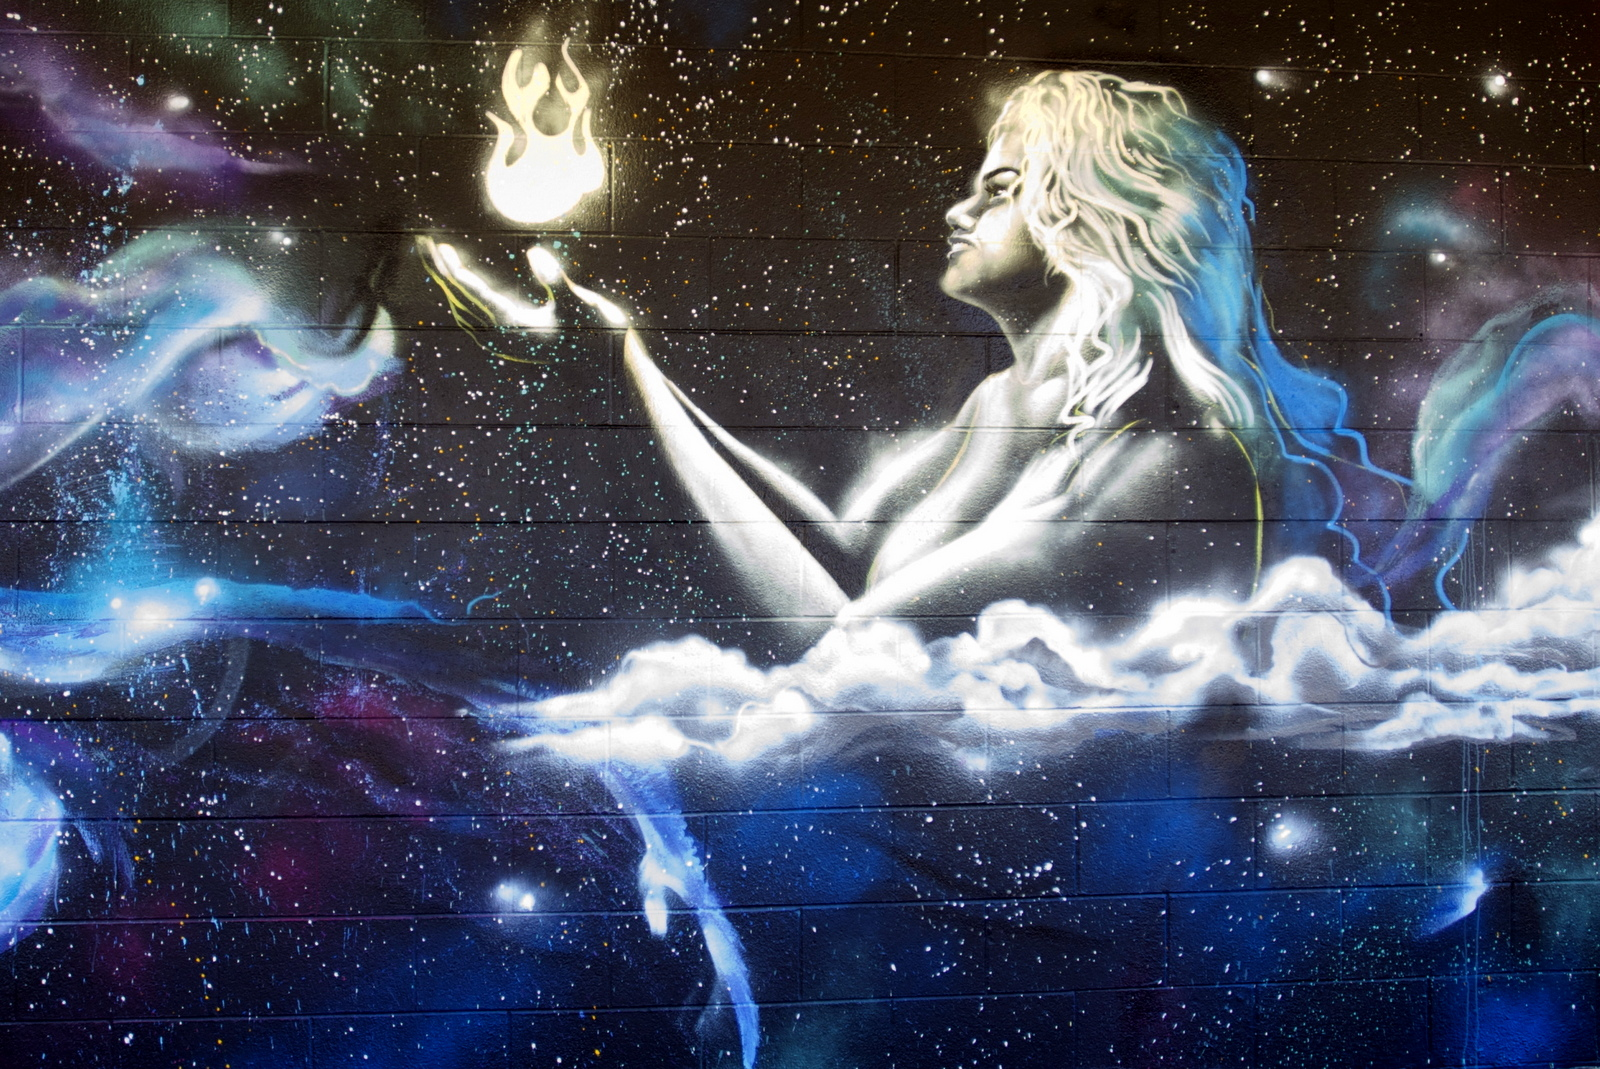 The Hina Wall of the the new Mele Mural at UH Hilo. Hina holds a white flame.